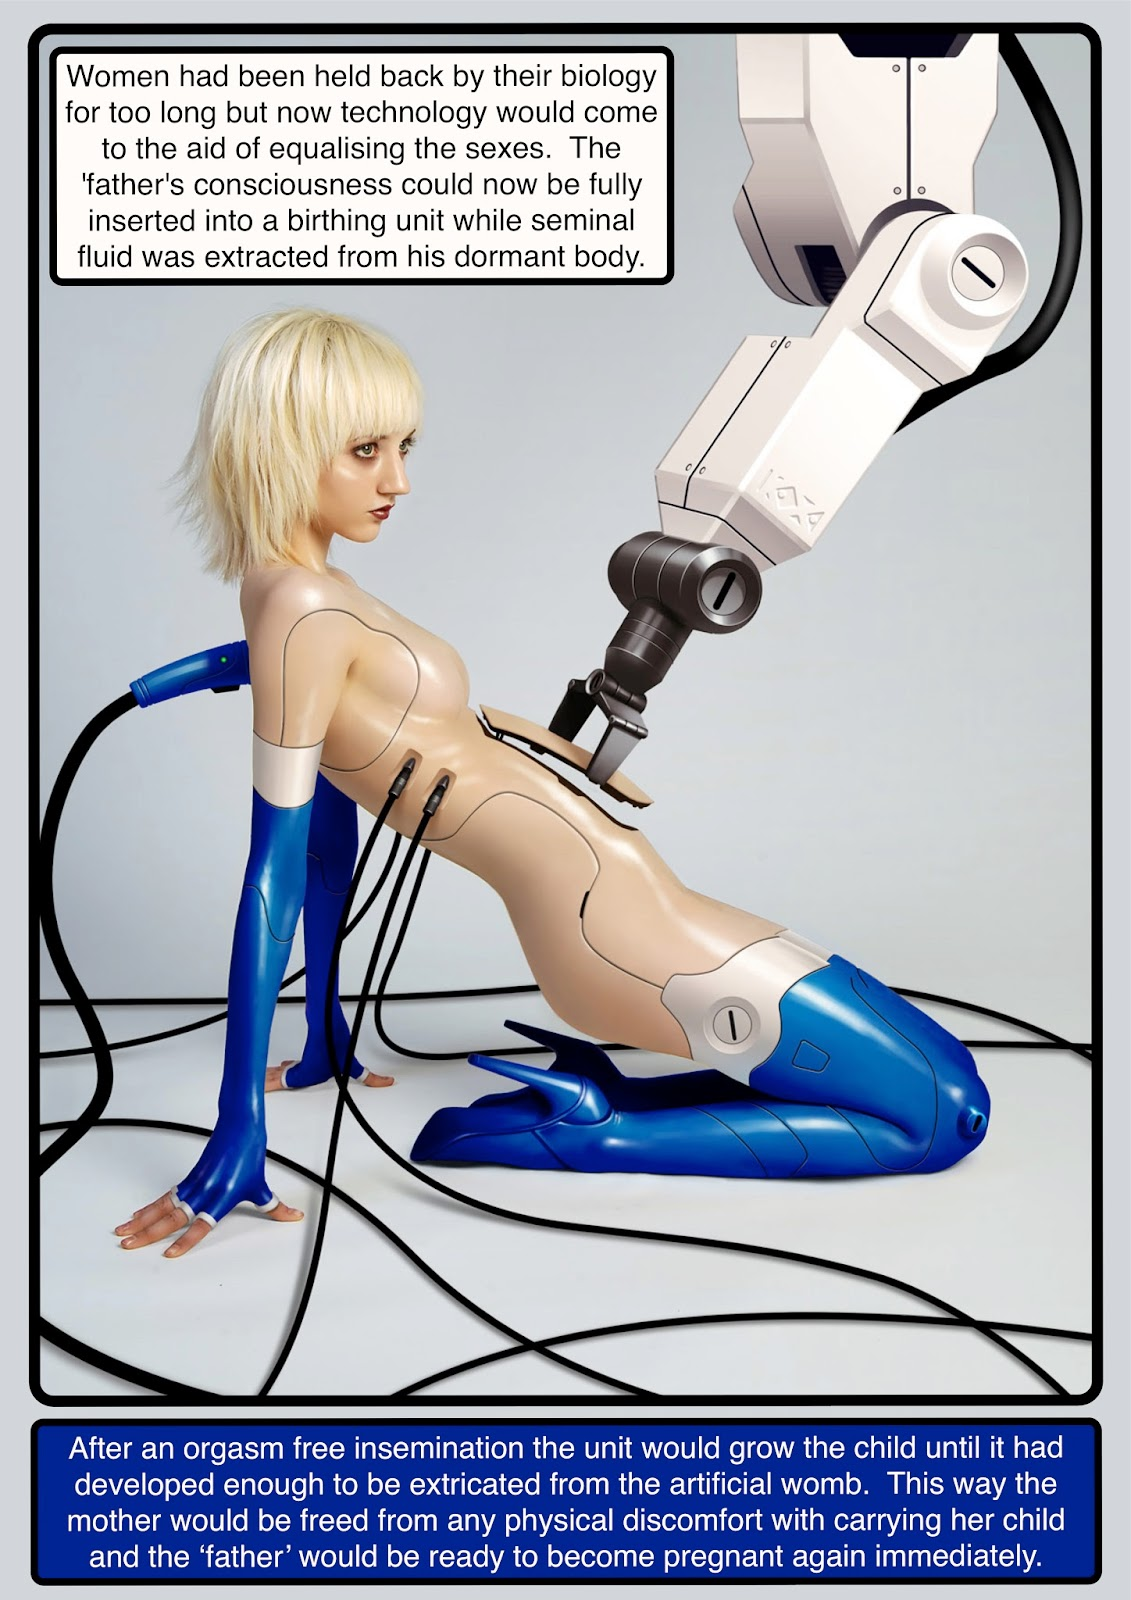 Porn with artificial woman erotic images